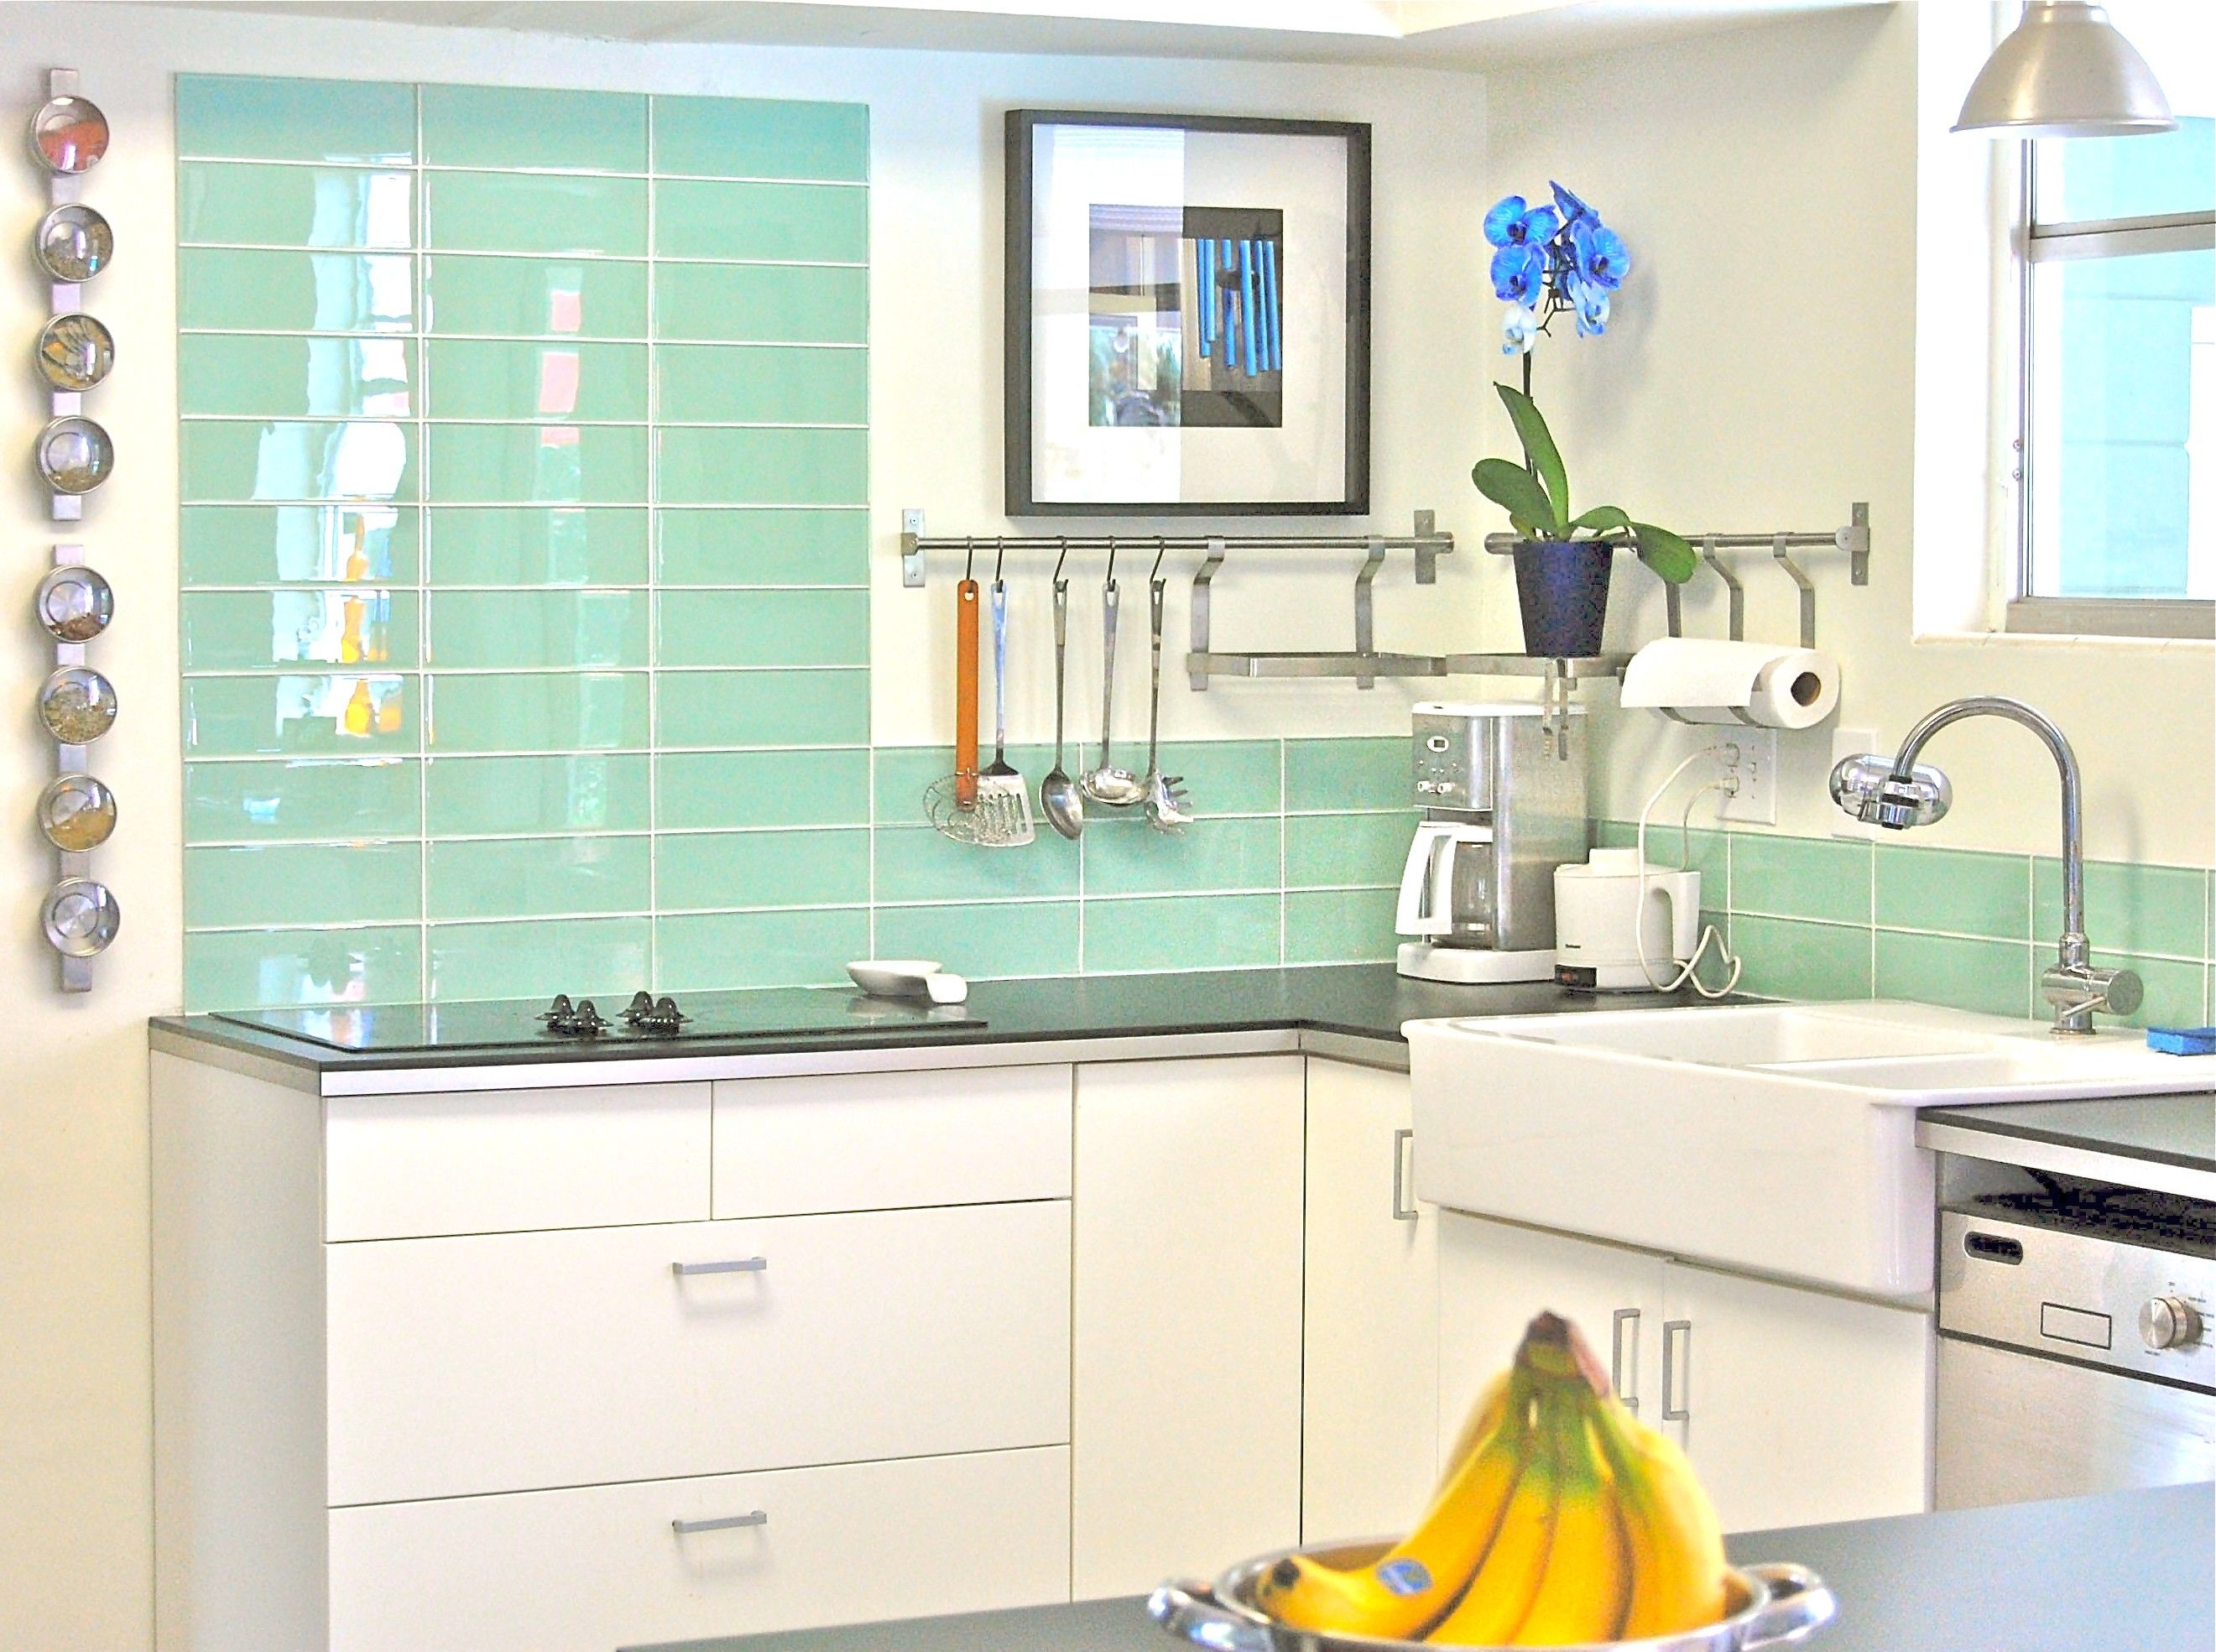 Excellent Kitchen Seafoam Green Tile Backsplash Counter Yahoo Home Interior And Landscaping Ologienasavecom